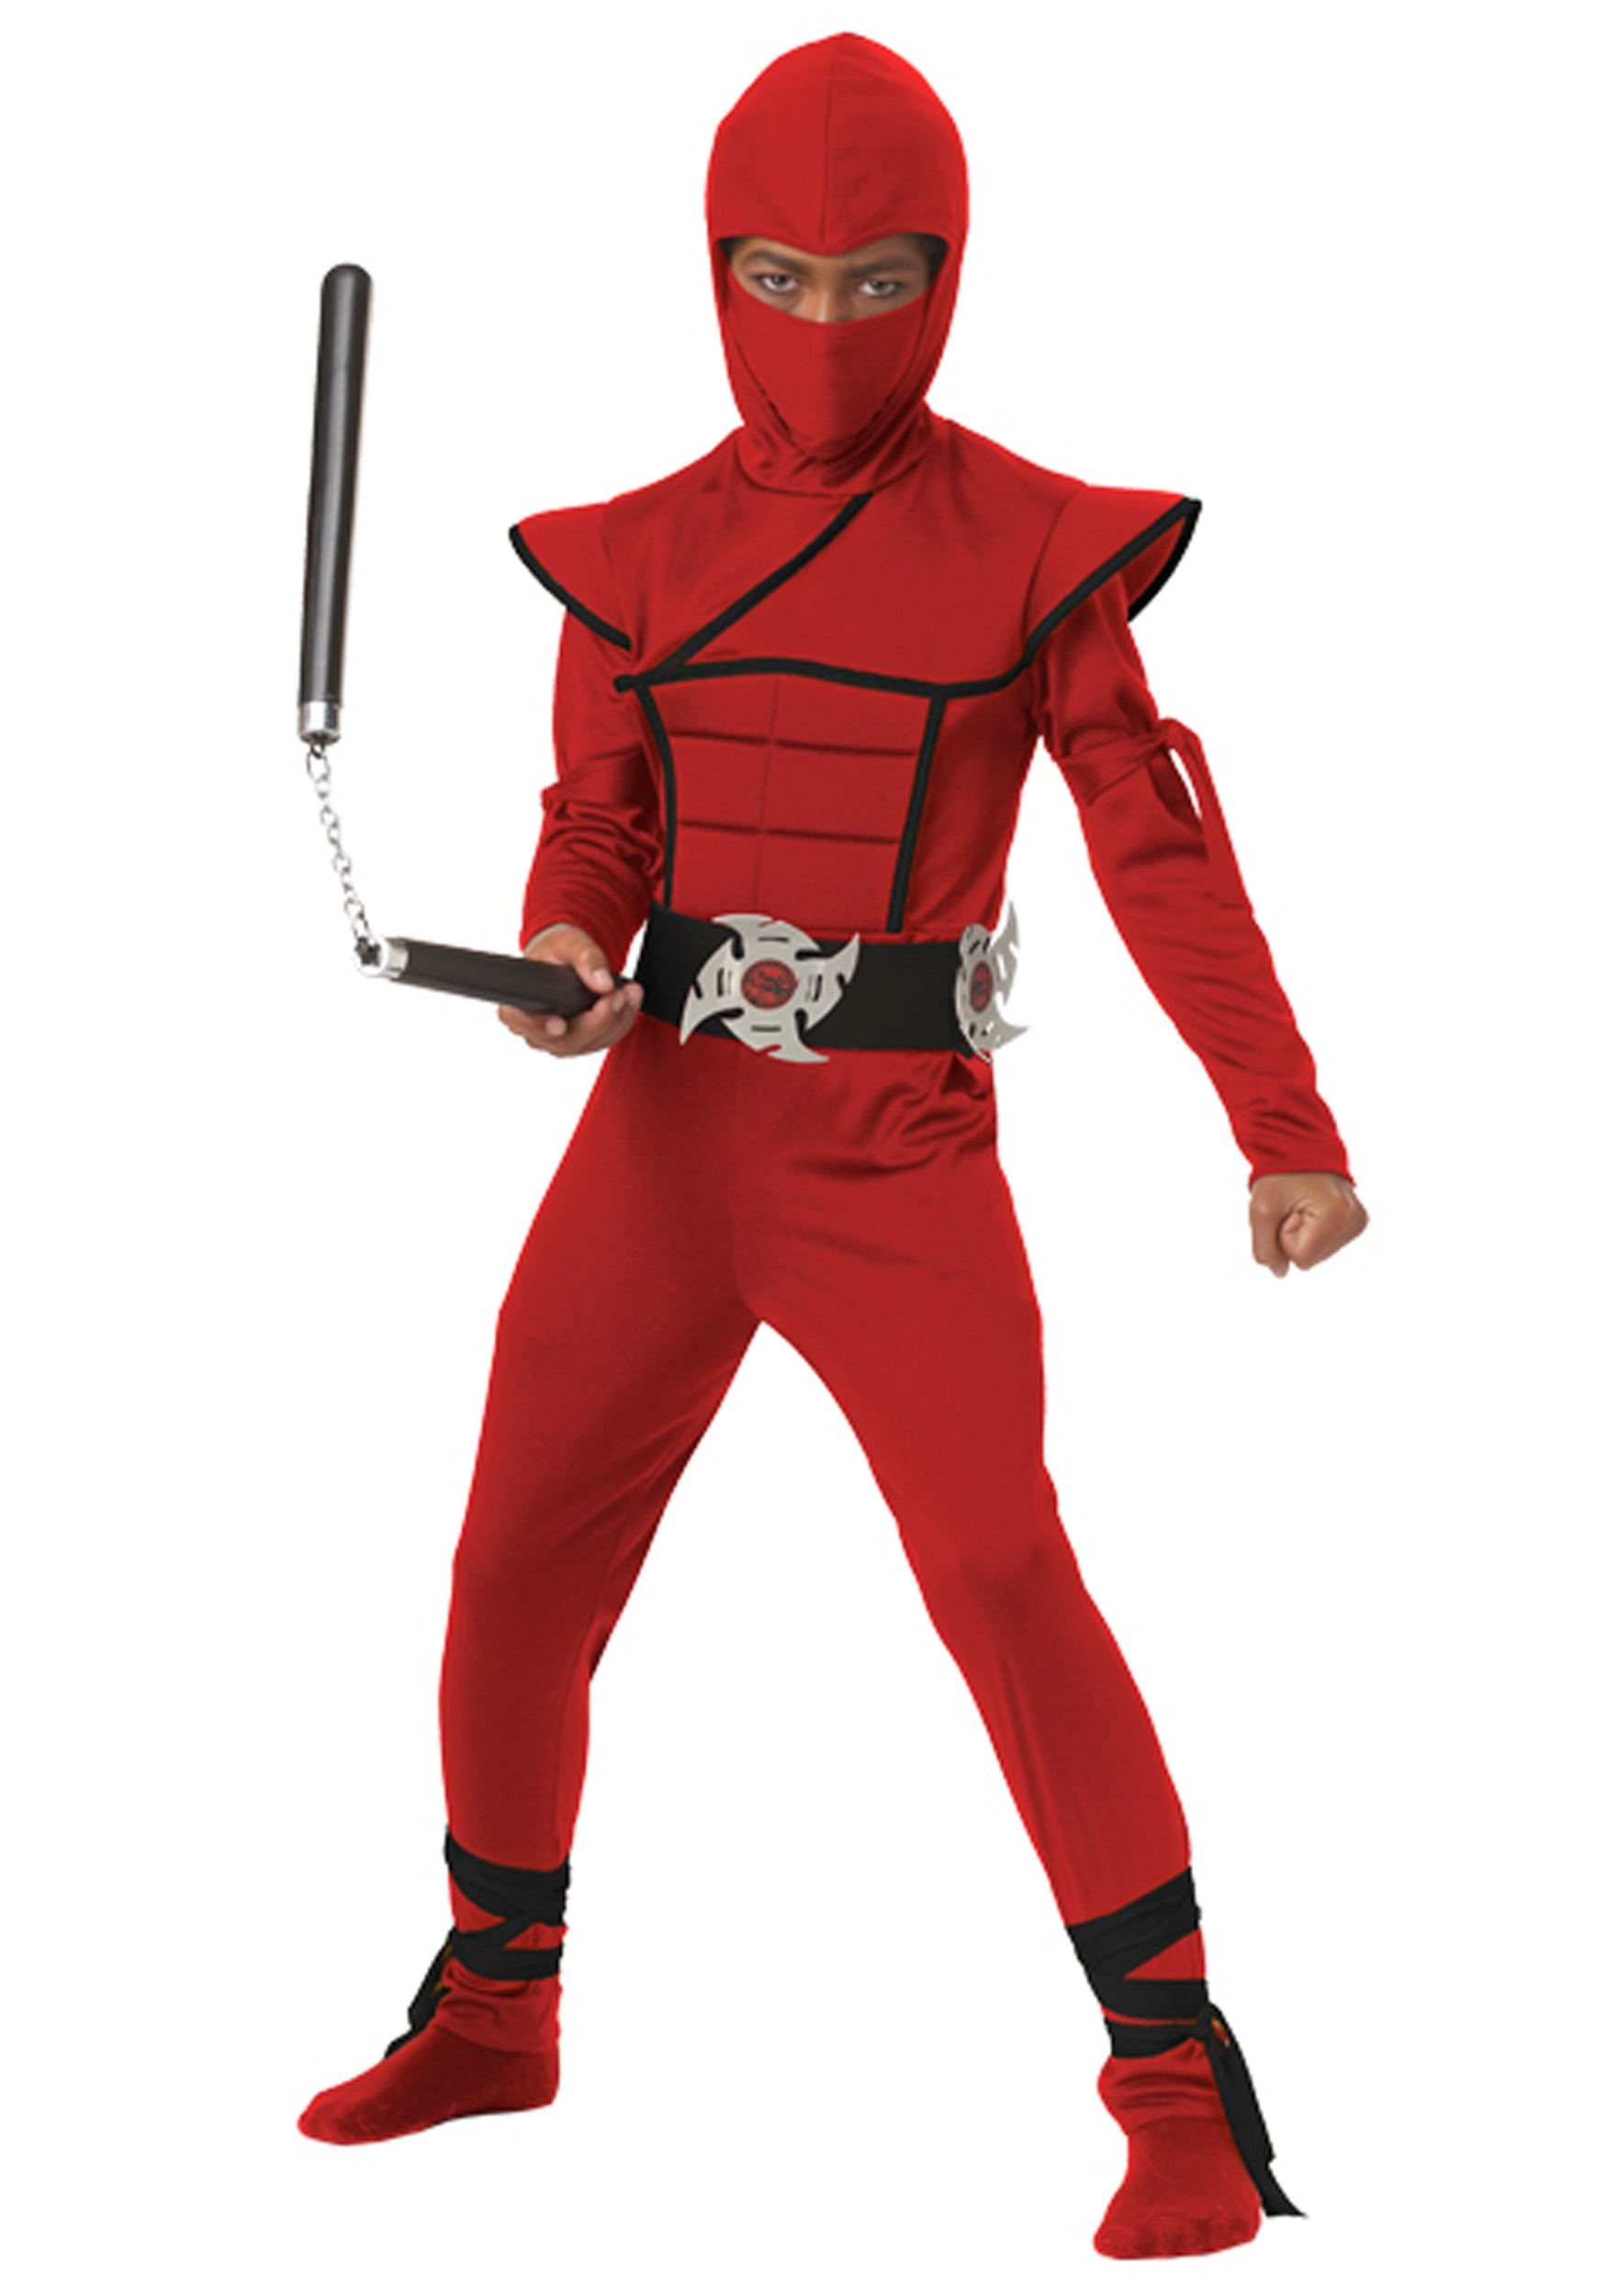 Boys Red Stealth Ninja Costume  sc 1 st  Fun.com & Red Stealth Ninja Boys Costume